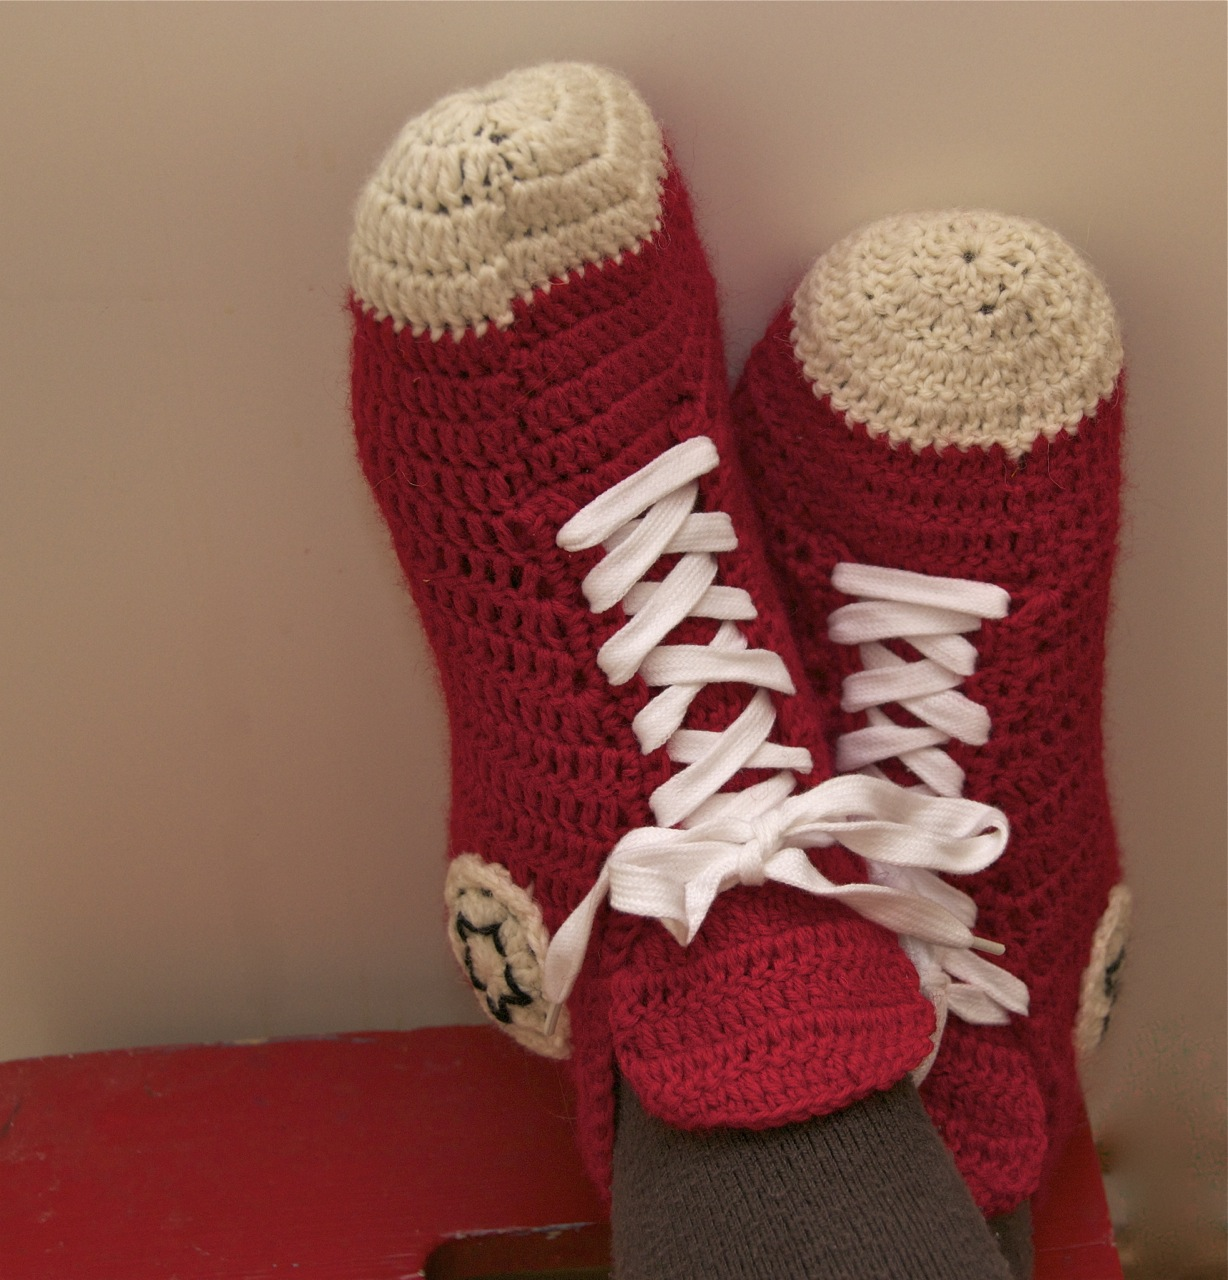 cool crochet patterns coolest crochet slippers patterns for boys ..sneakers! DWKNLDZ